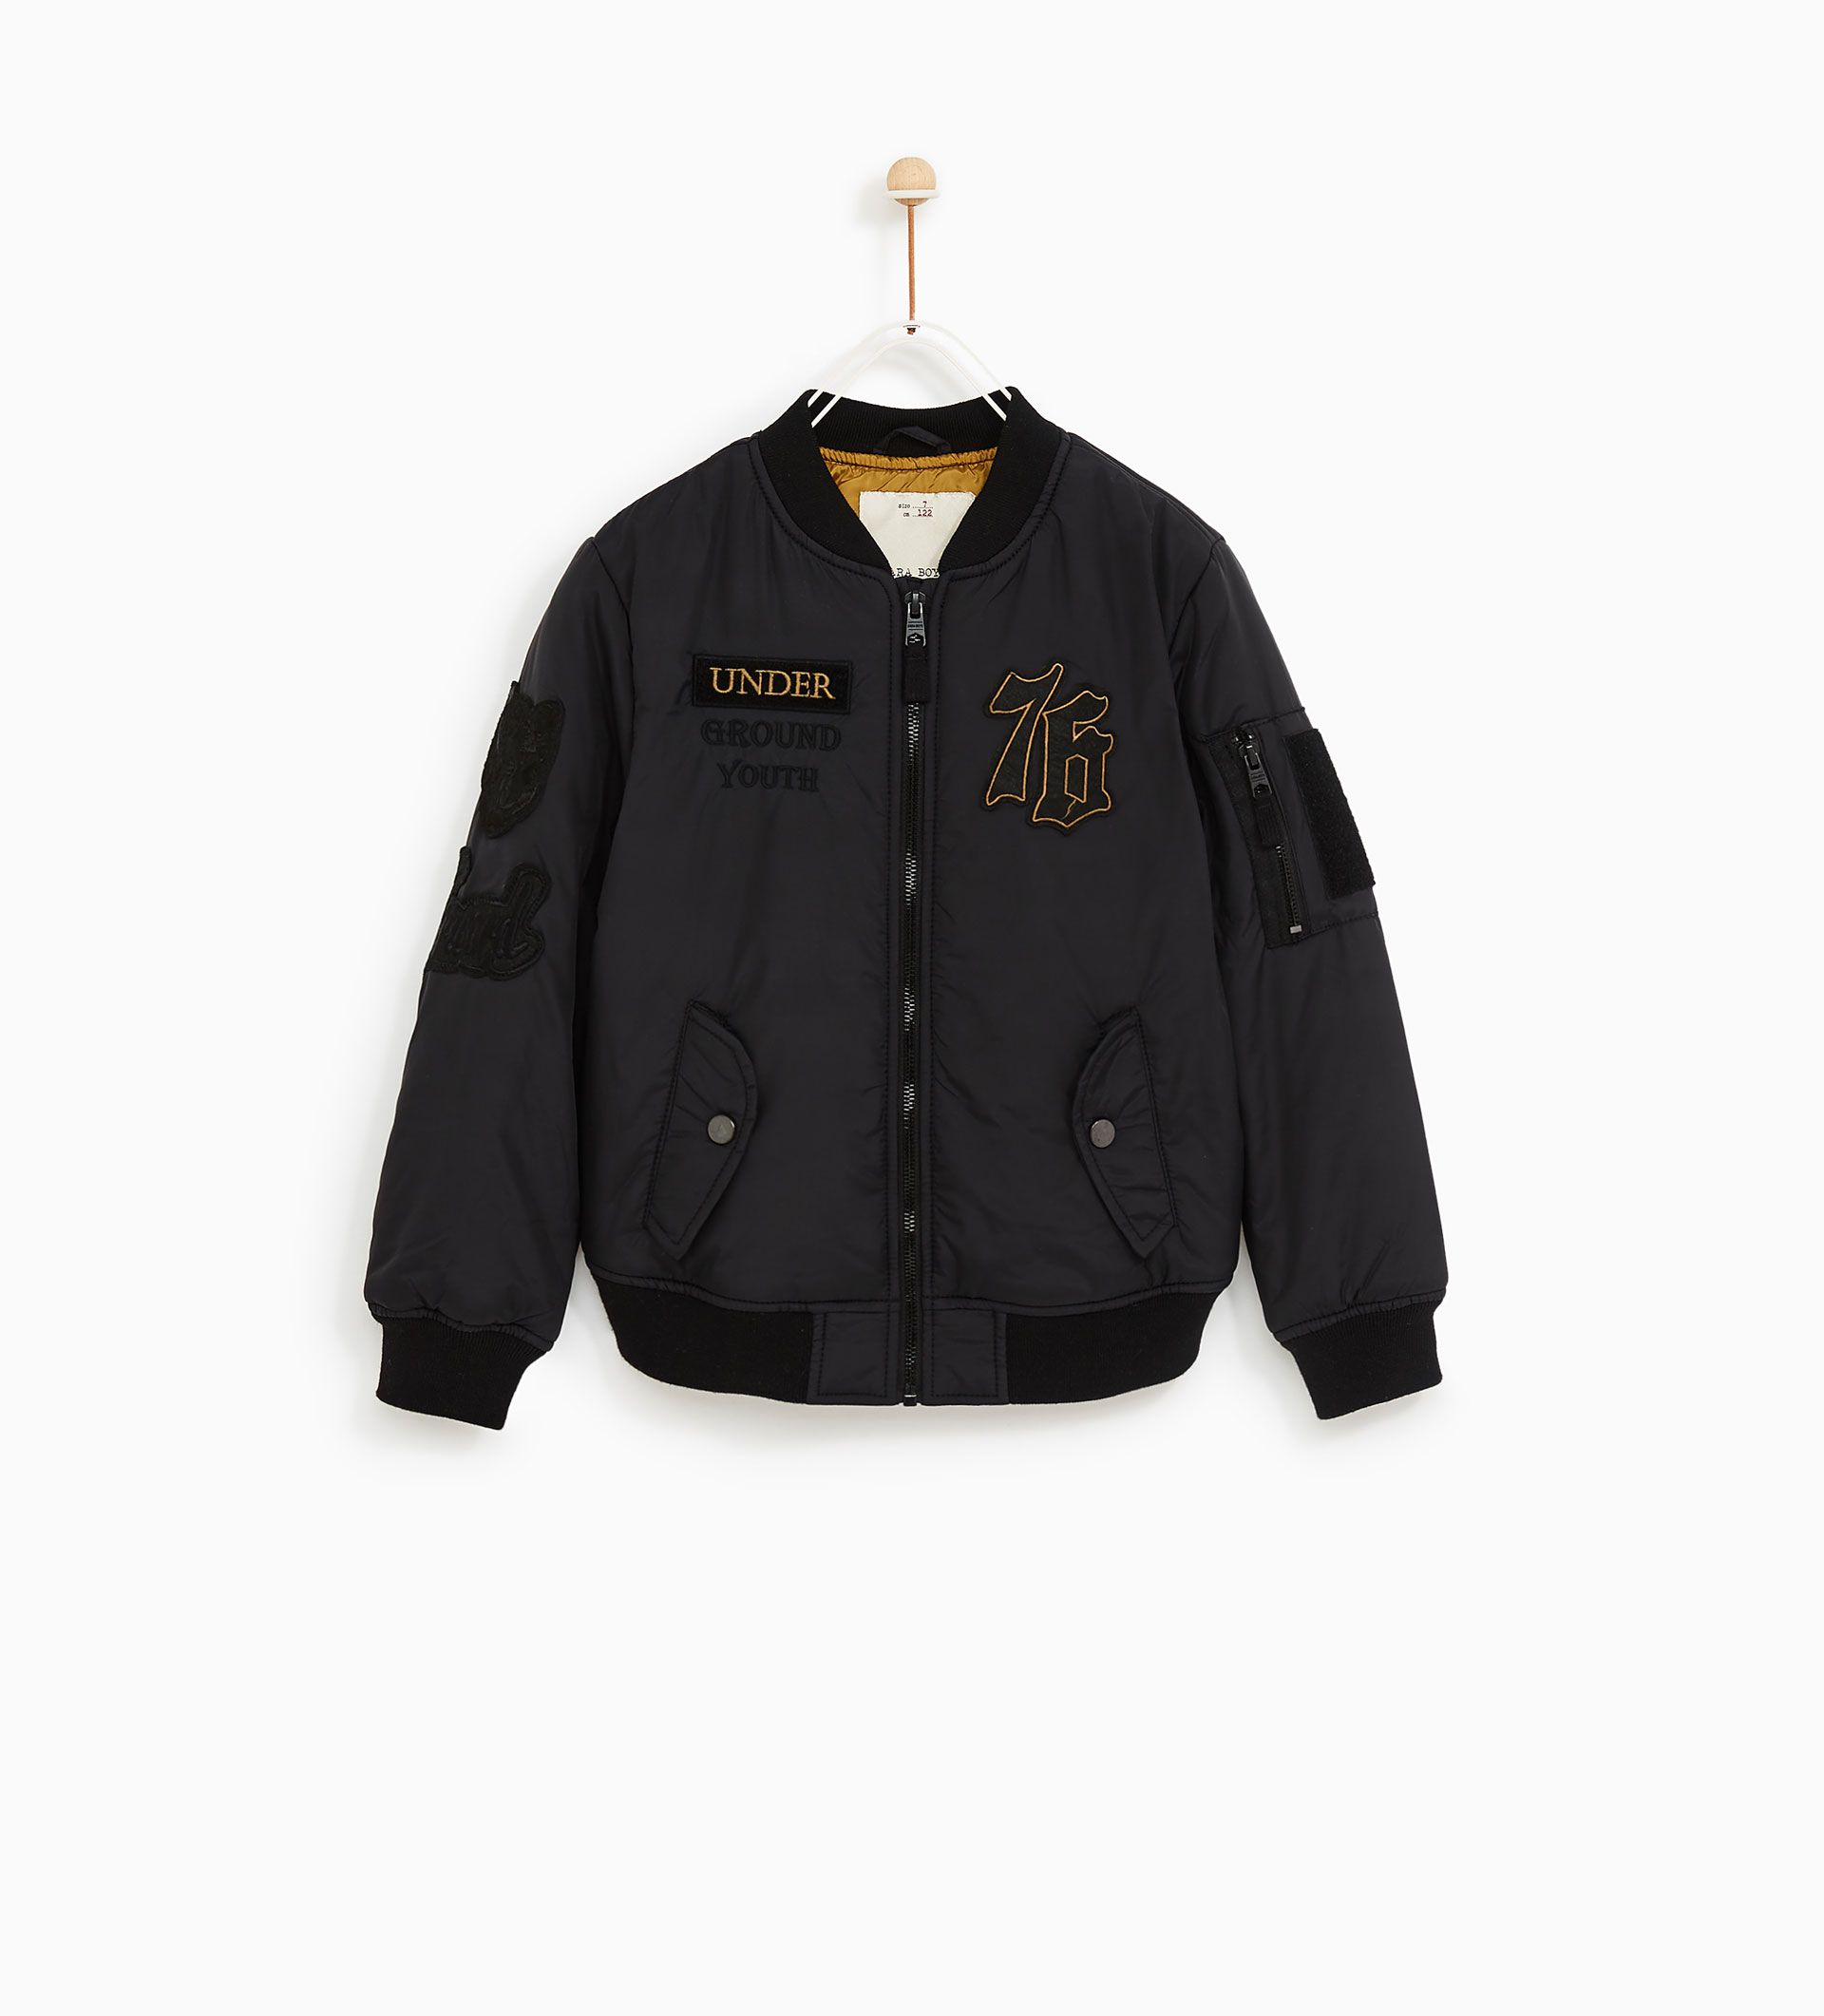 MILITARY BOMBER JACKET WITH PATCHES